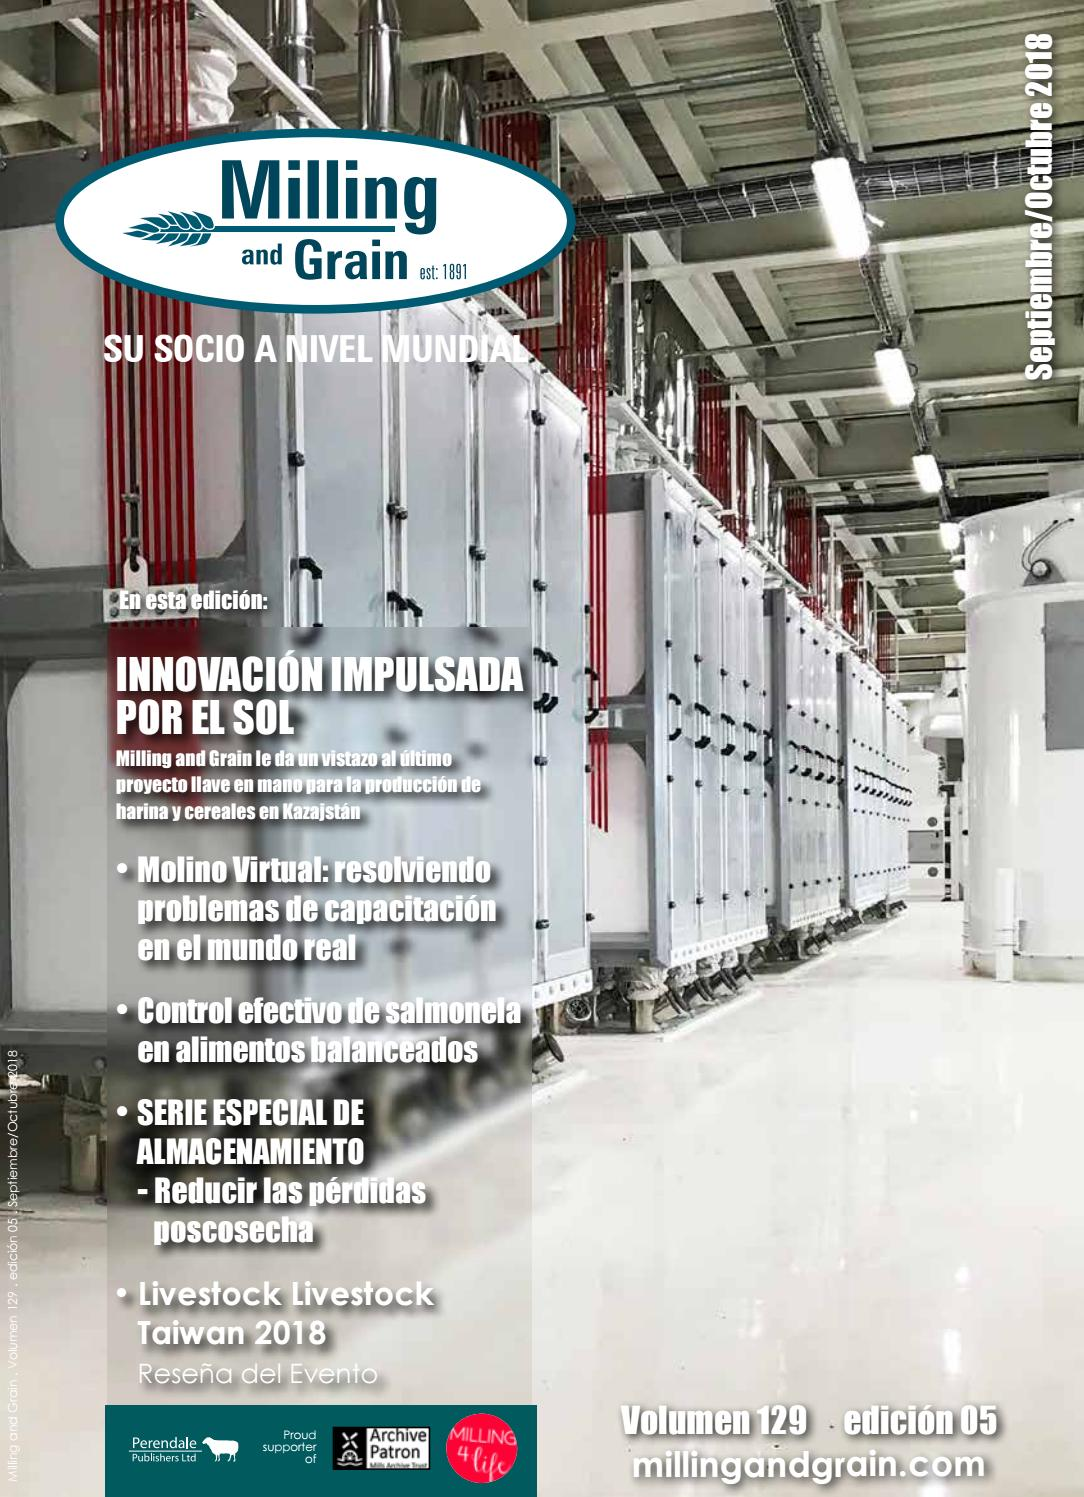 SPANISH LANGUAGE EDITION - Milling and Grain - issue 5 - 2018 by Perendale  Publishers - issuu 5c07f9fa527b